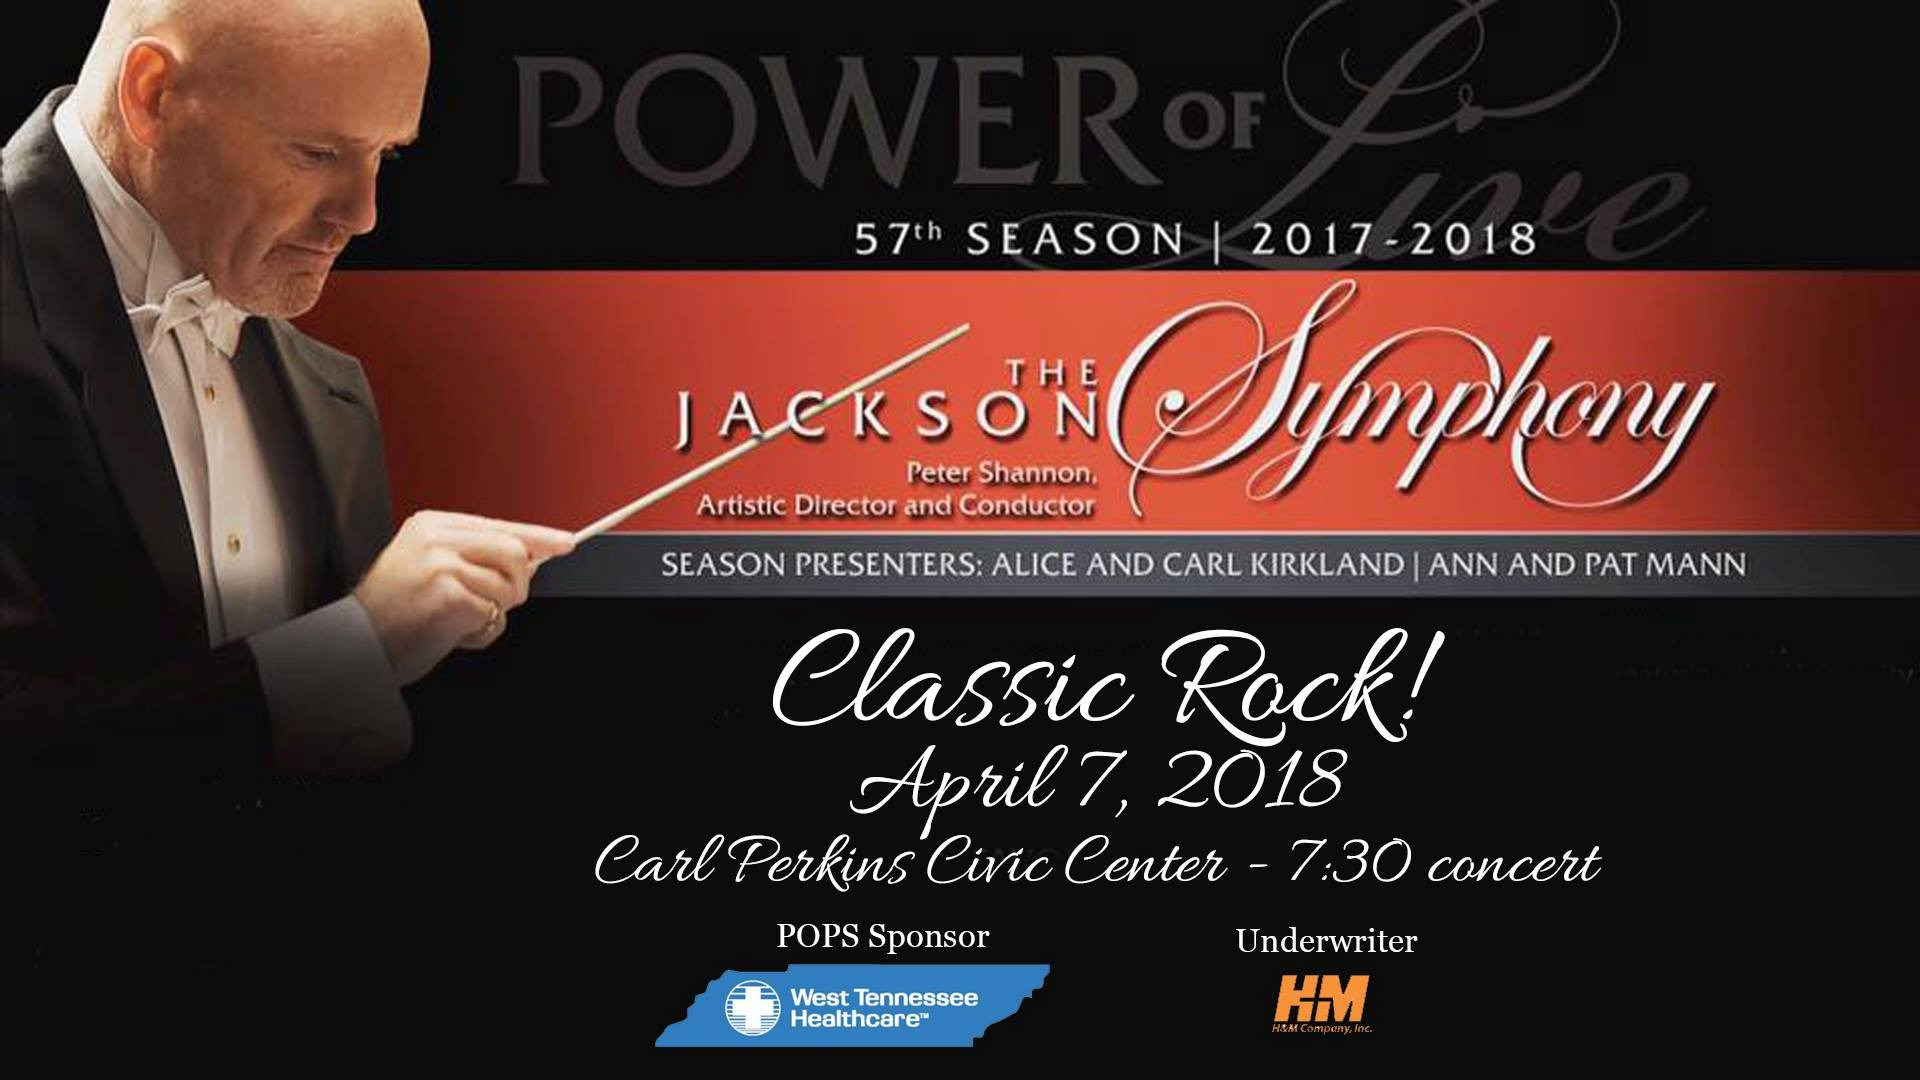 The Jackson Symphony-Classic Rock